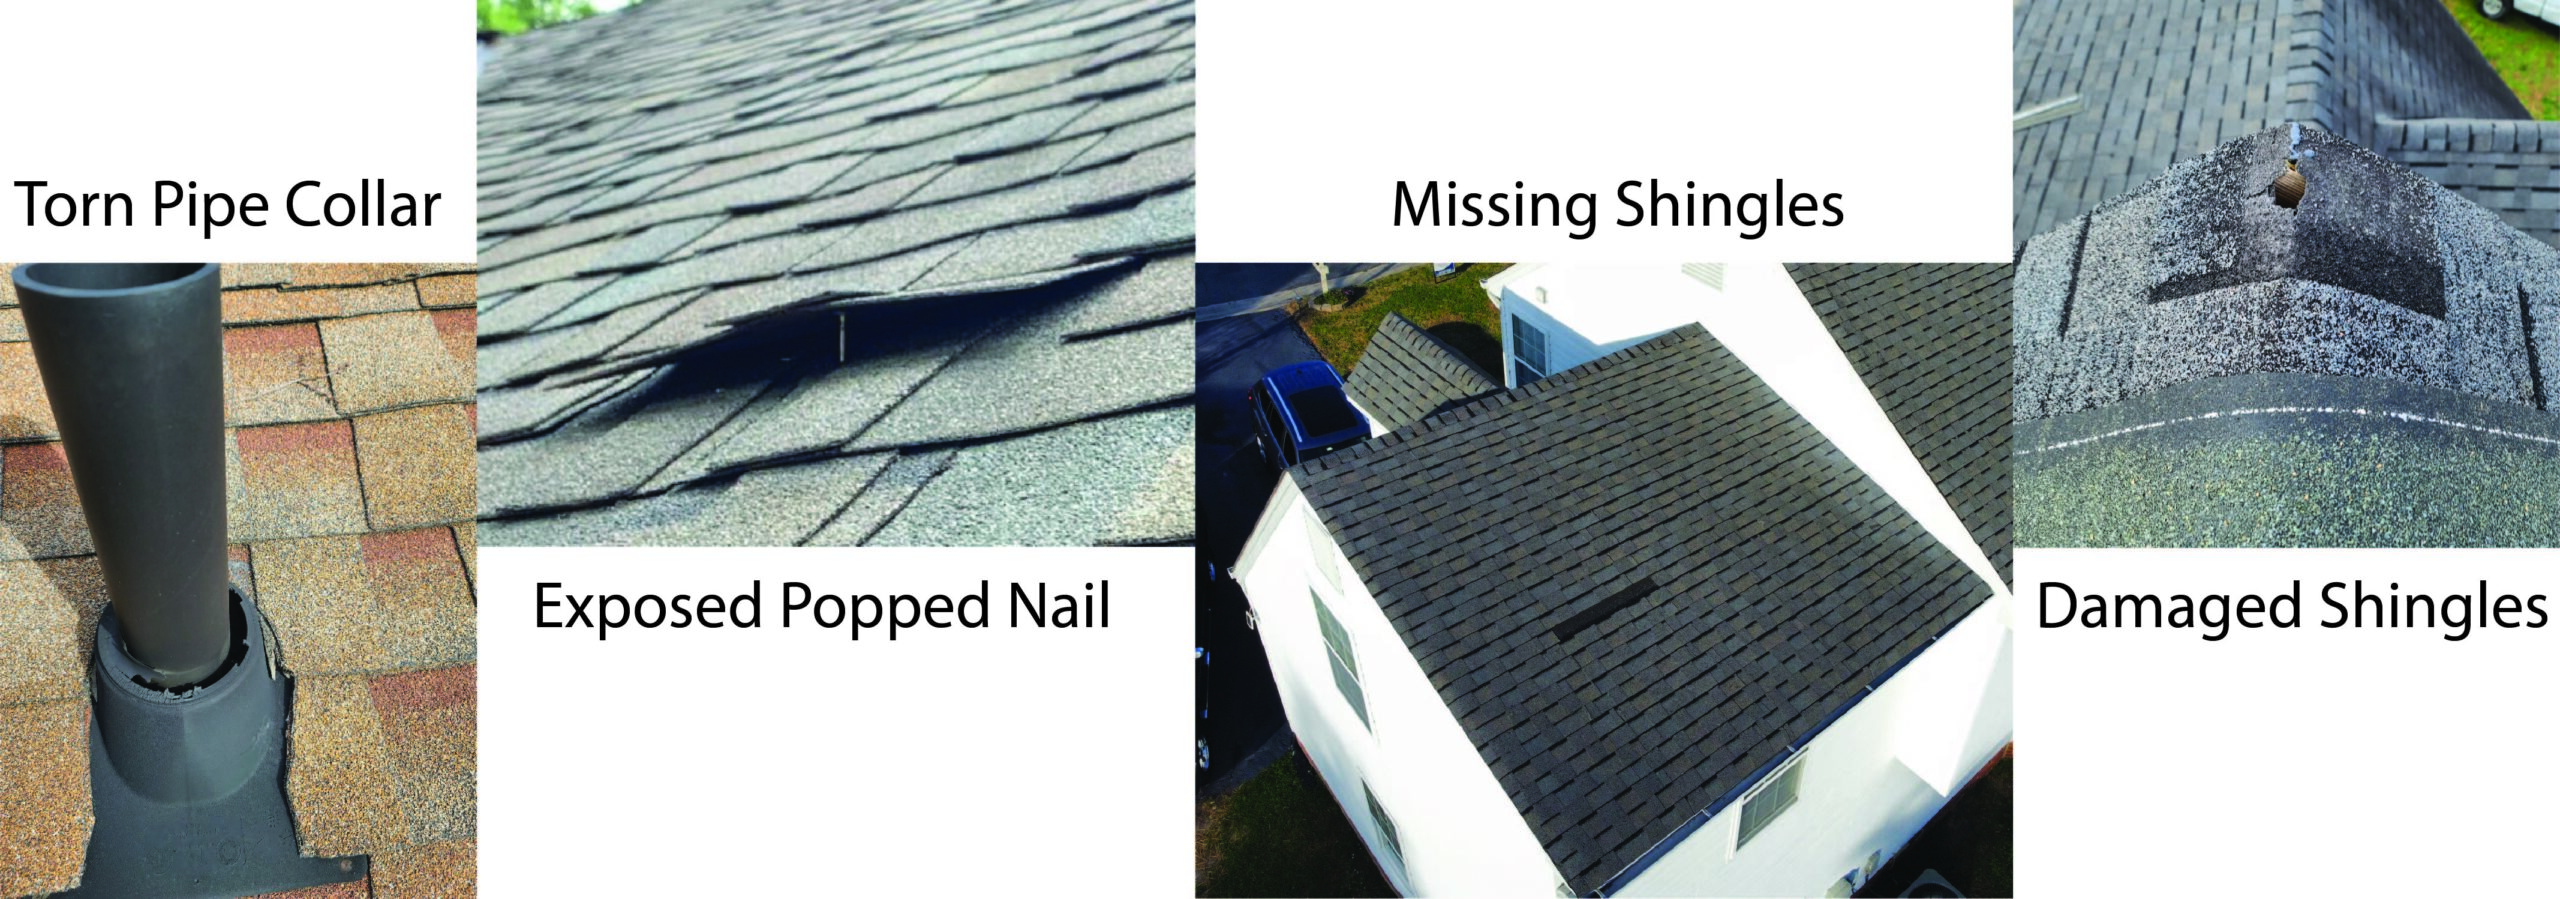 https://secureservercdn.net/198.71.233.138/lze.1ce.myftpupload.com/wp-content/uploads/Common-Roof-Repairs-scaled.jpg?time=1613951446